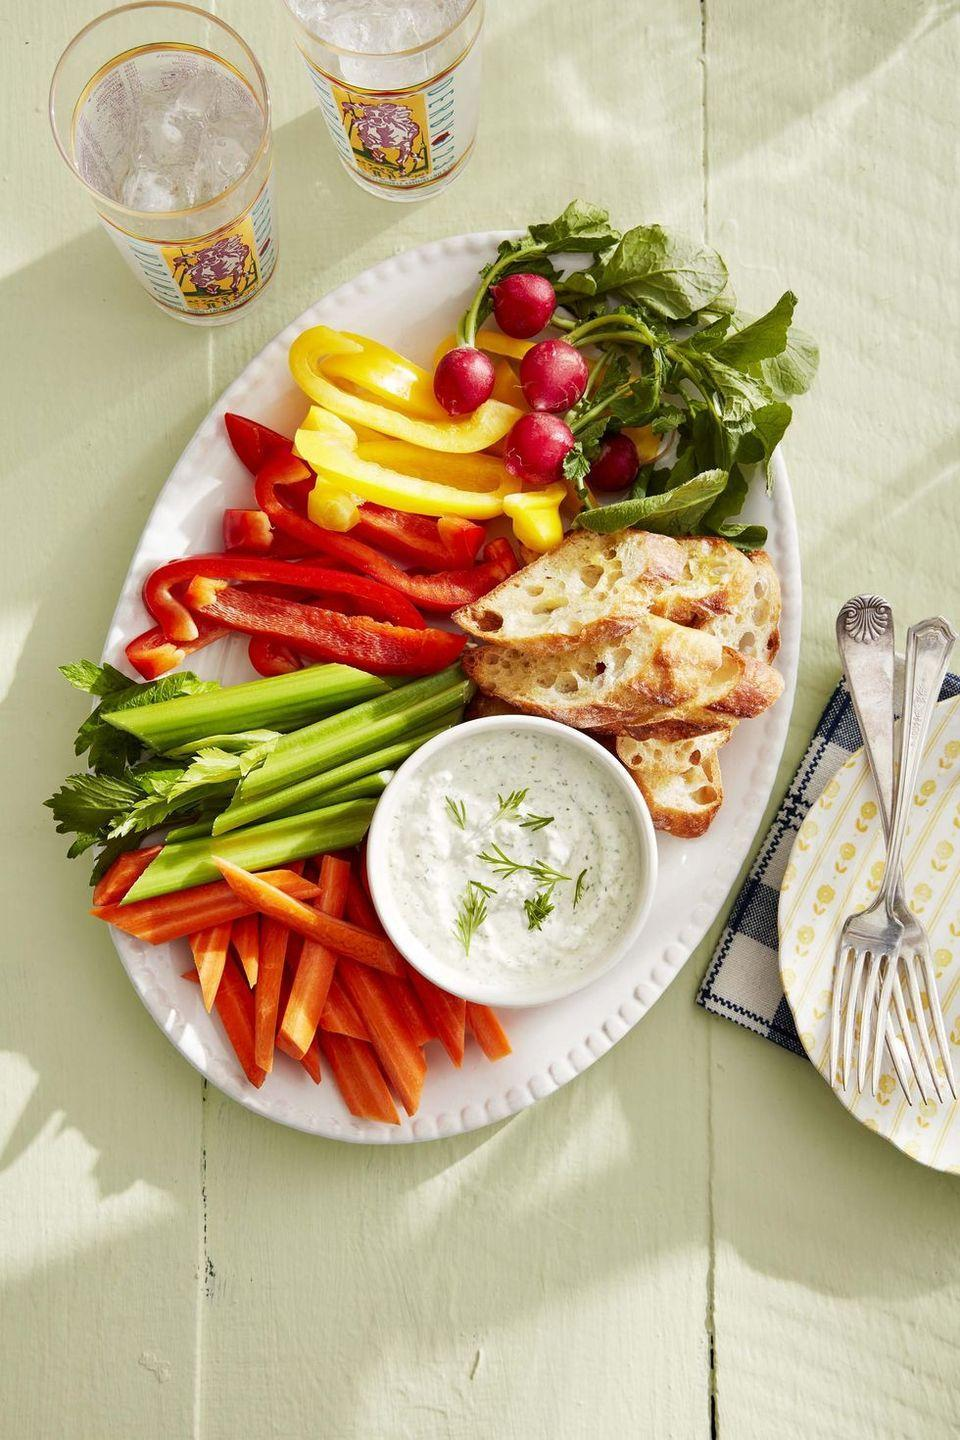 "<p>Cream cheese, cucumber, and dill make this an elegant, refreshing dip to serve with your prettiest crudité</p><p><em><a href=""https://www.countryliving.com/food-drinks/a32042586/benedictine-spread/"" rel=""nofollow noopener"" target=""_blank"" data-ylk=""slk:Get the recipe from Country Living »"" class=""link rapid-noclick-resp"">Get the recipe from Country Living »</a></em></p>"